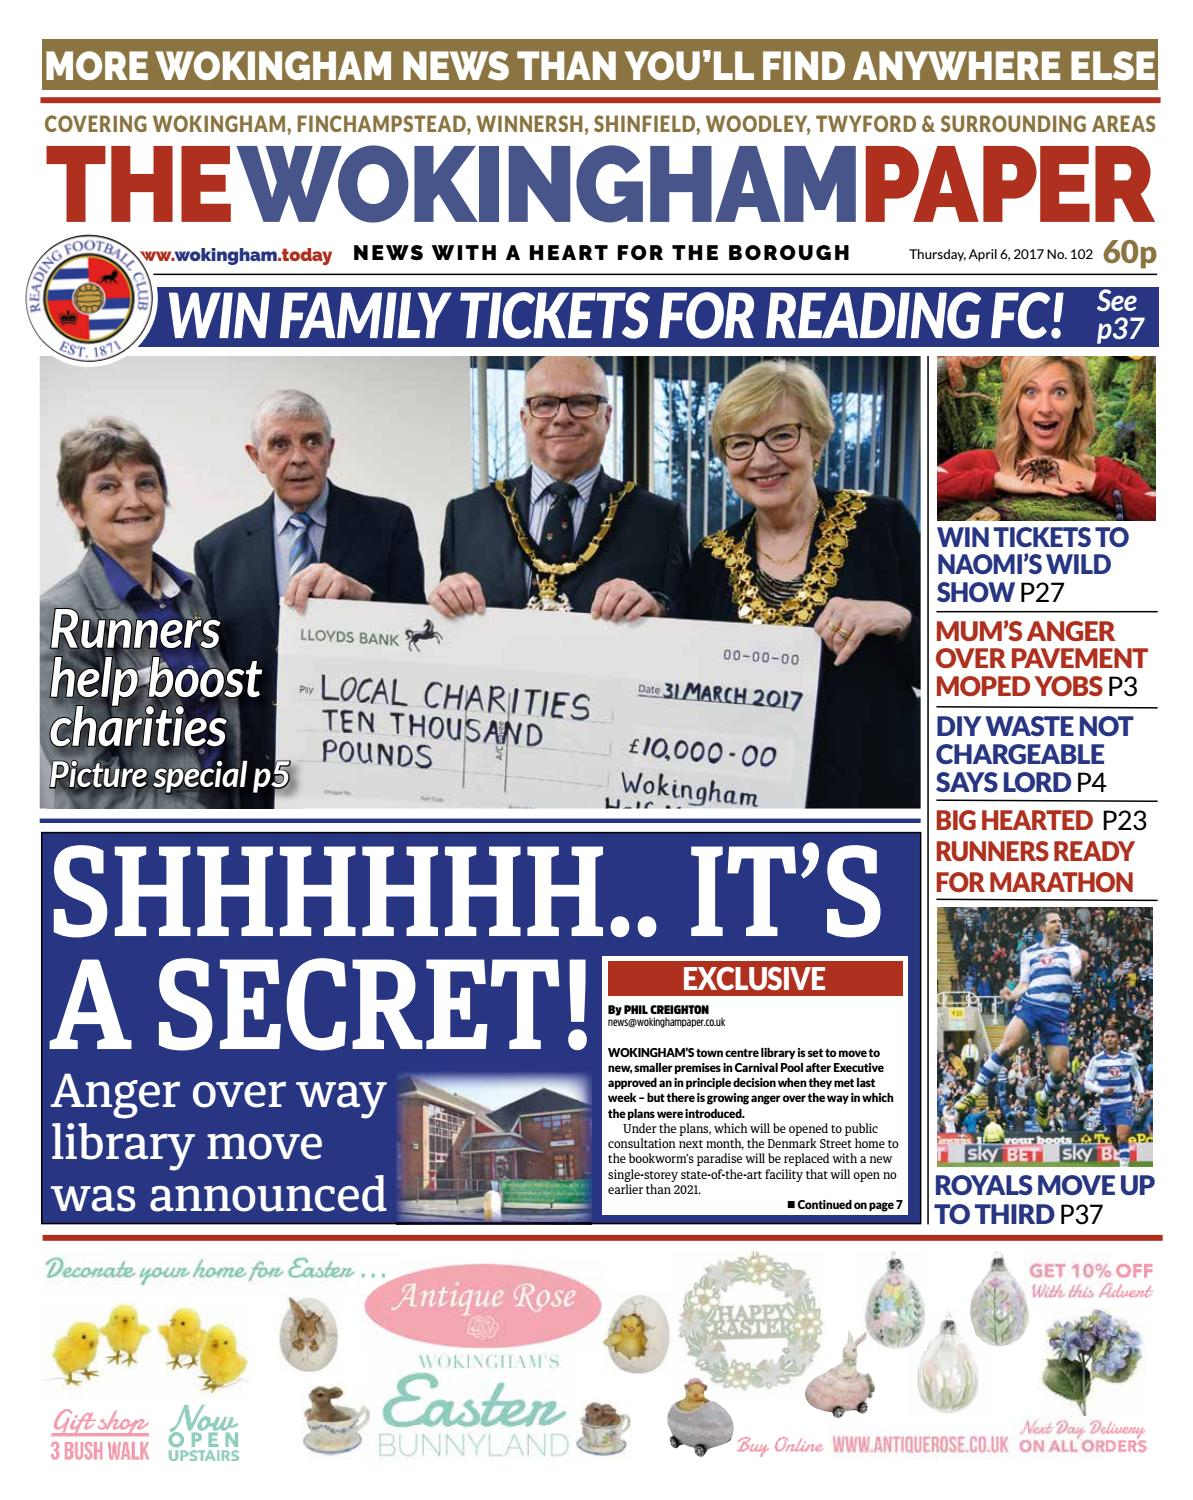 The Wokingham Paper April 6, 2017 by The Wokingham Paper - issuu